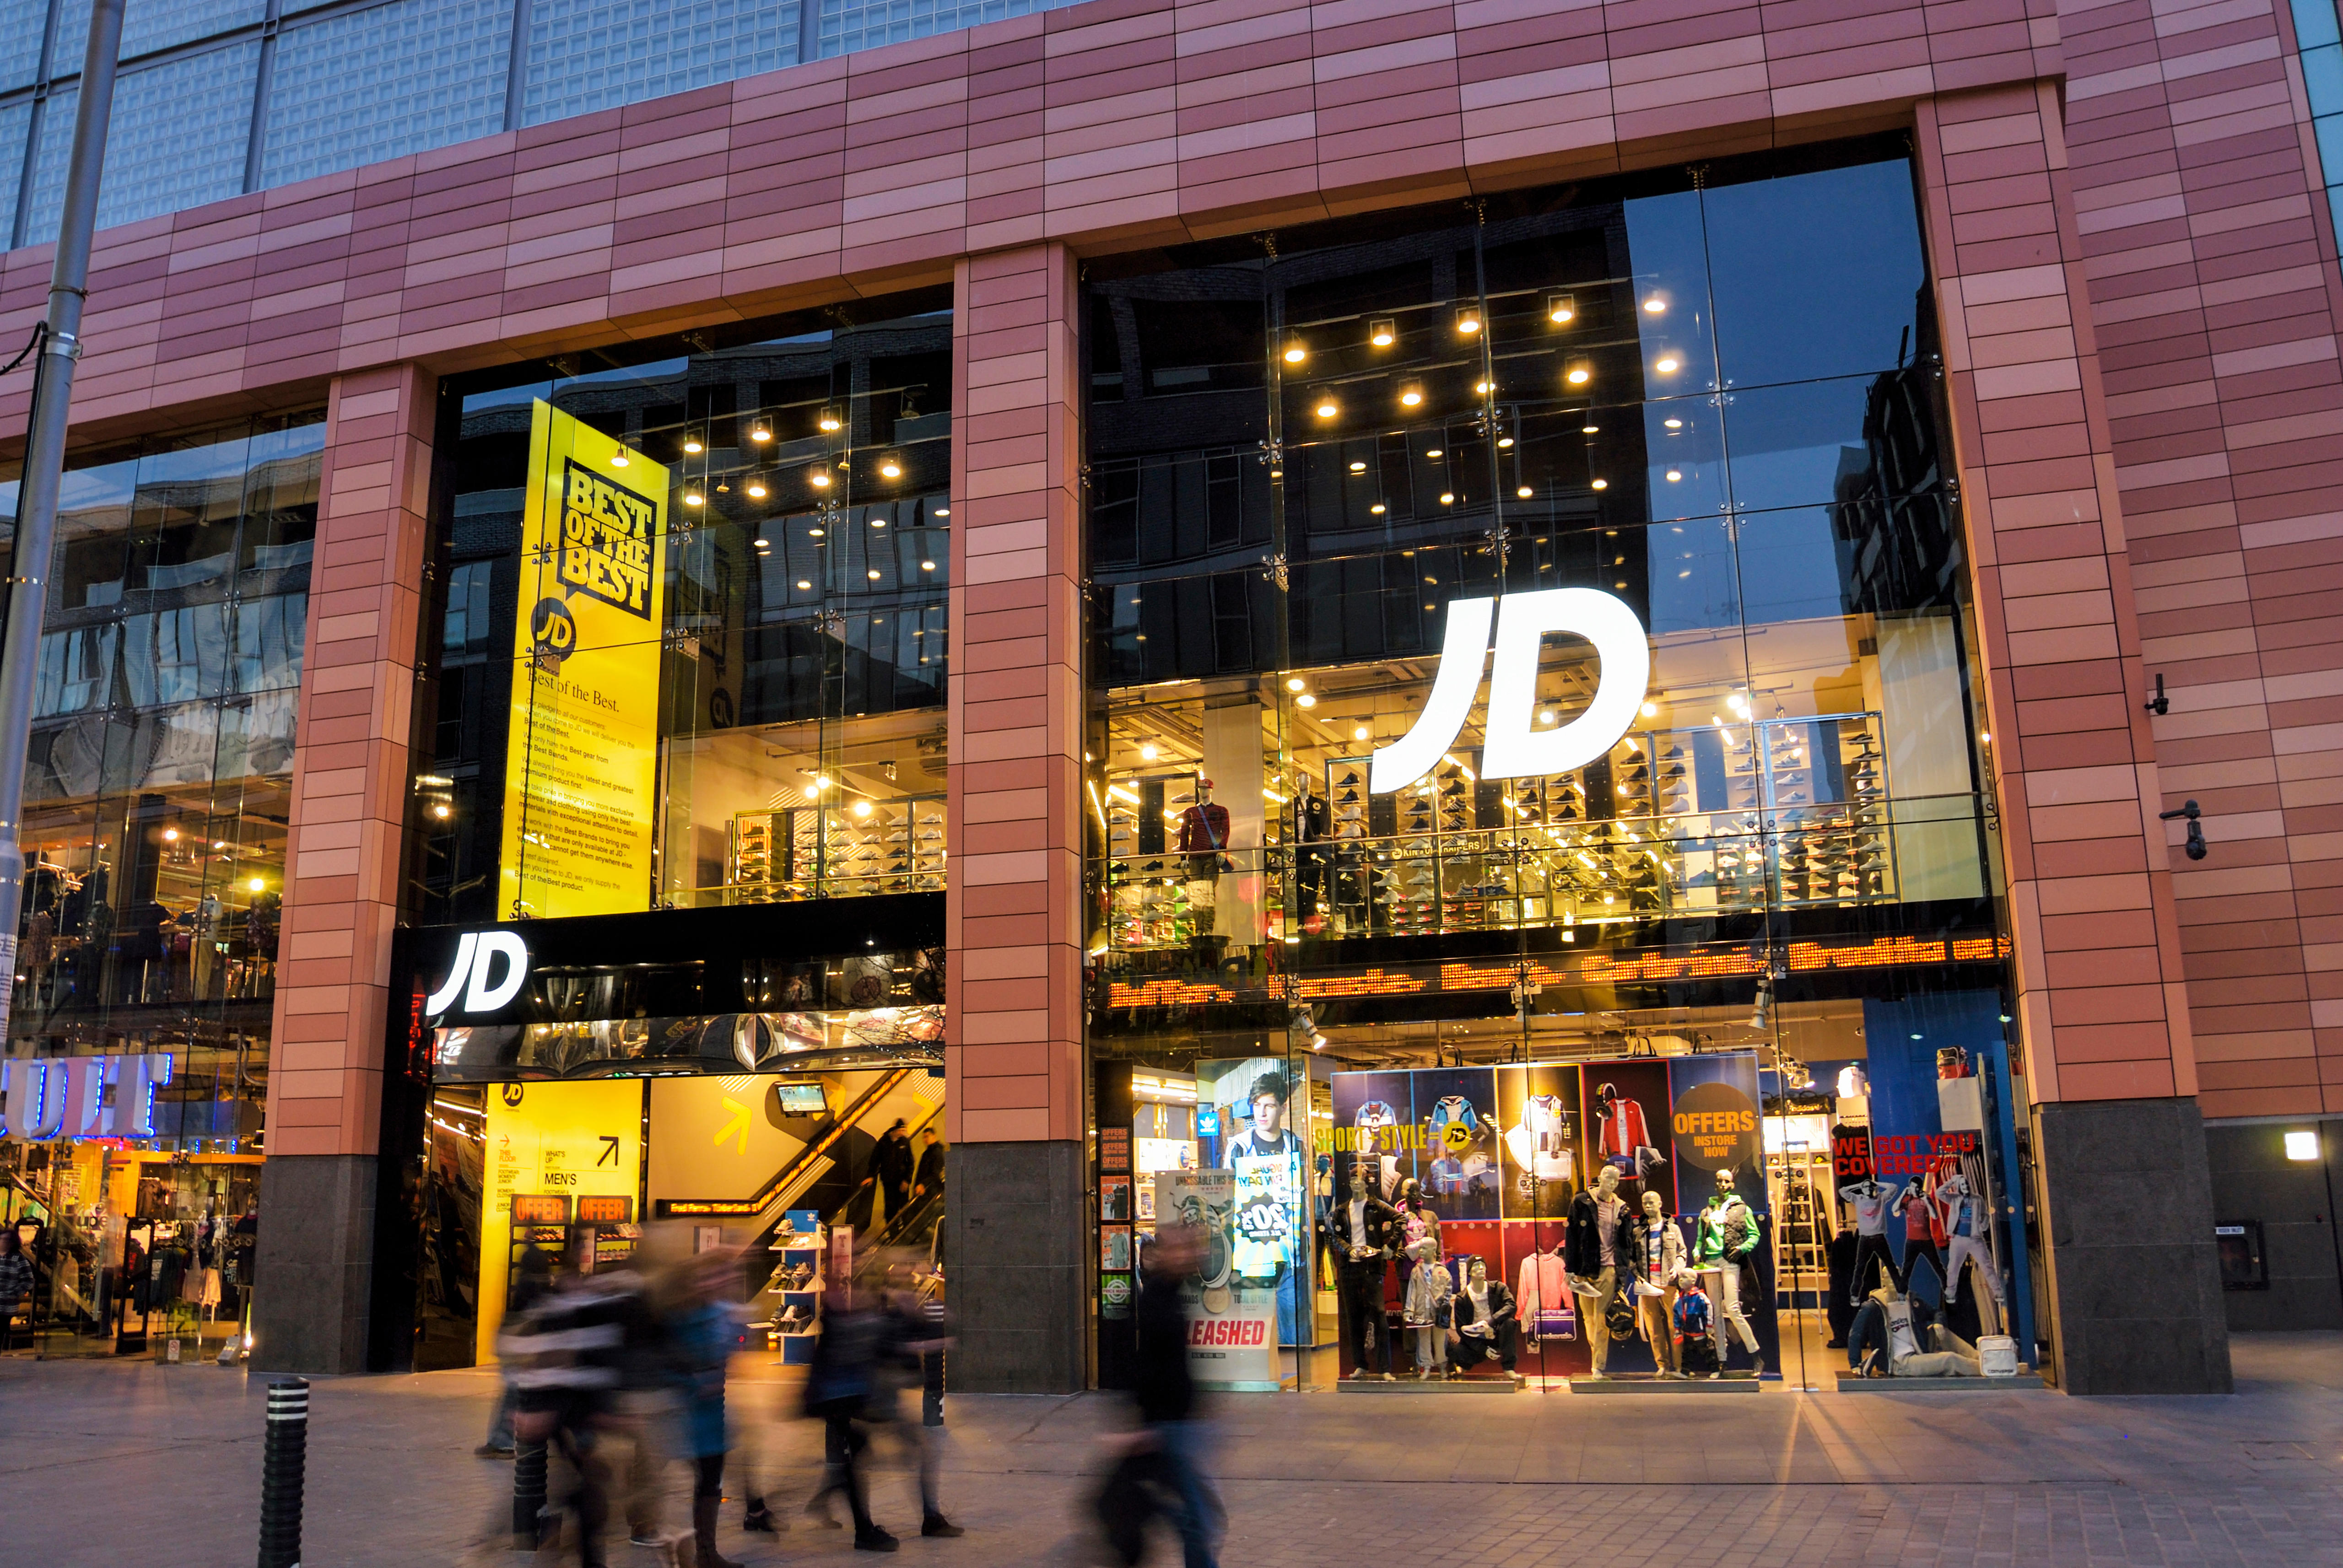 Jd Sports Vibrant Jd Sports Outpaces Competition Business The Times